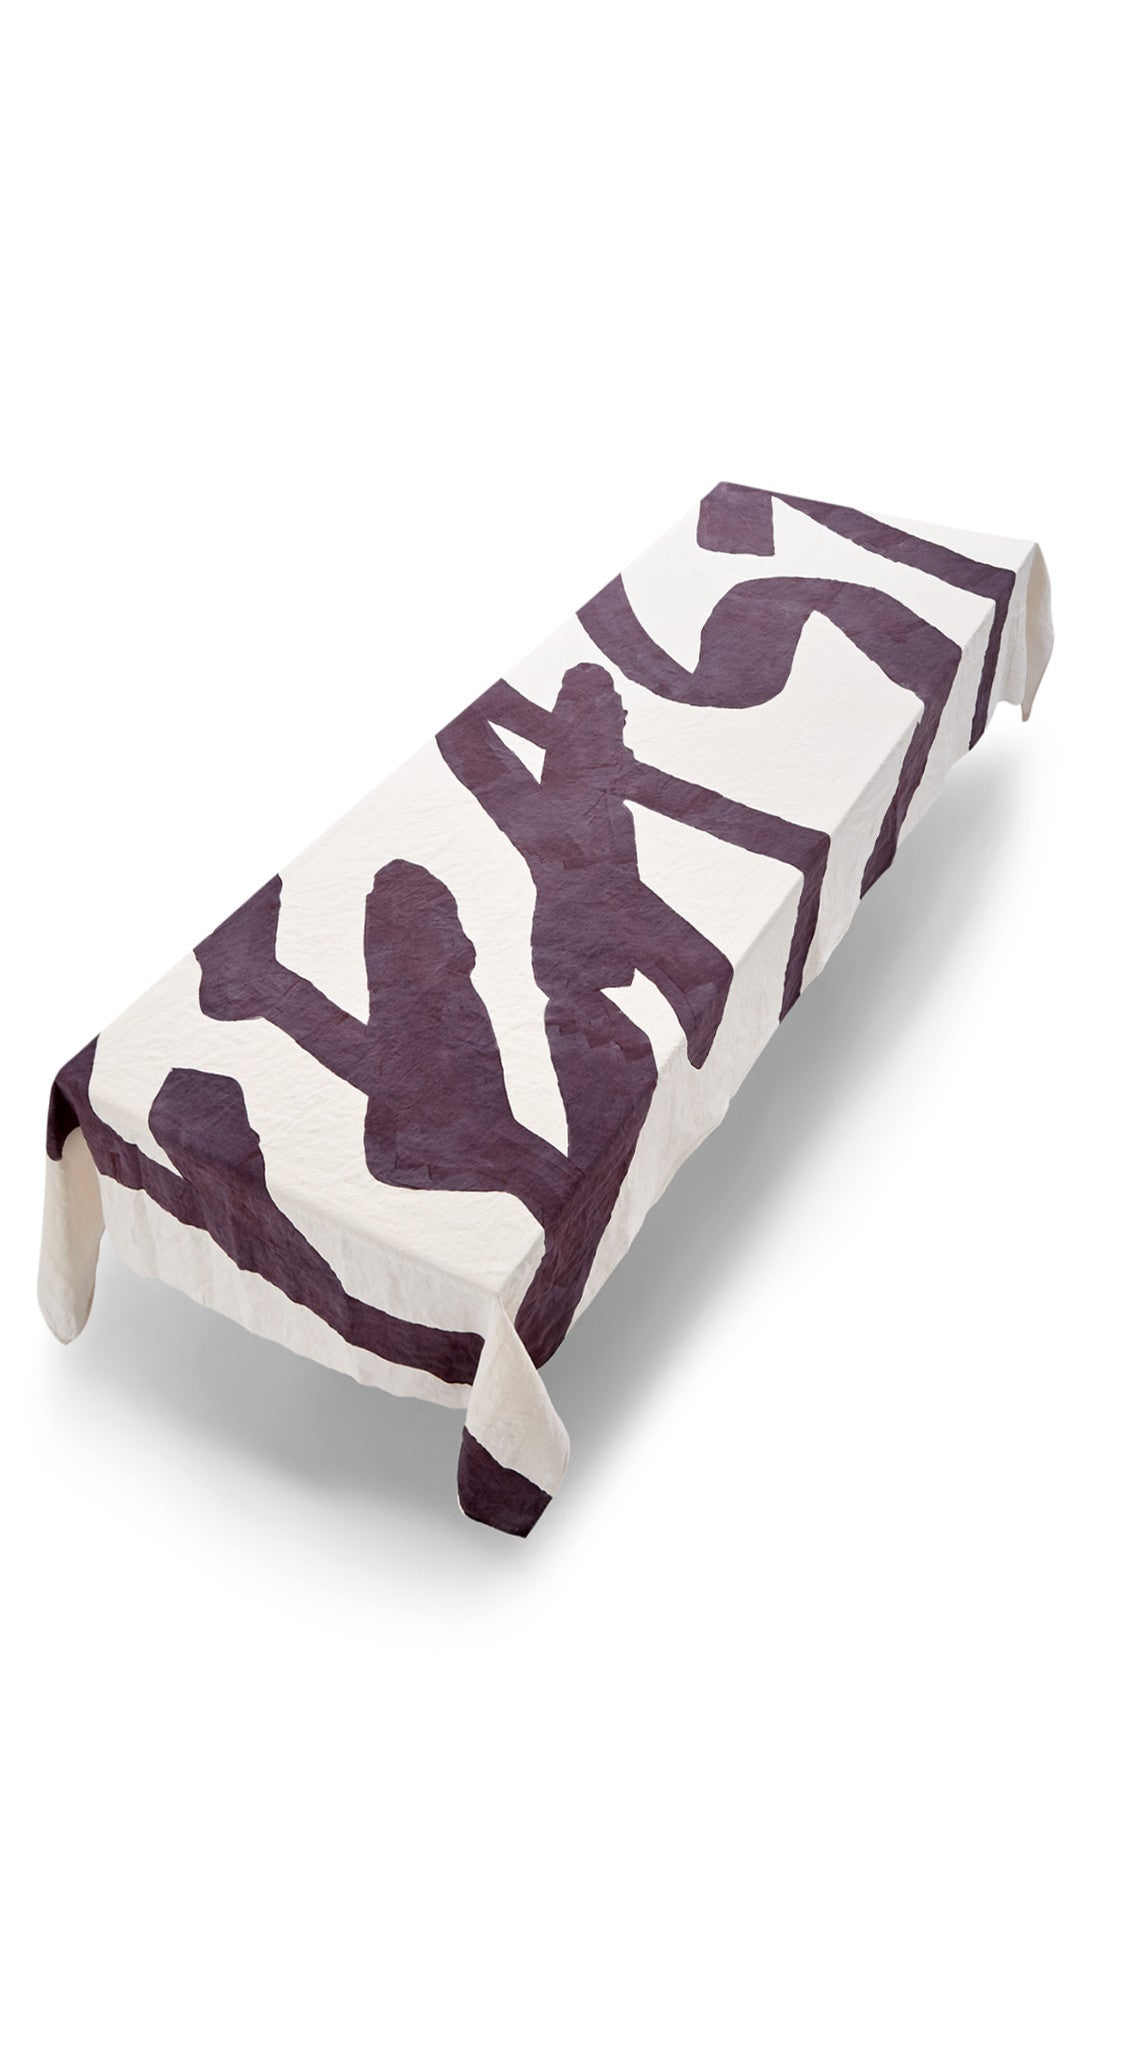 Feast Word Linen Tablecloth in Grape Purple